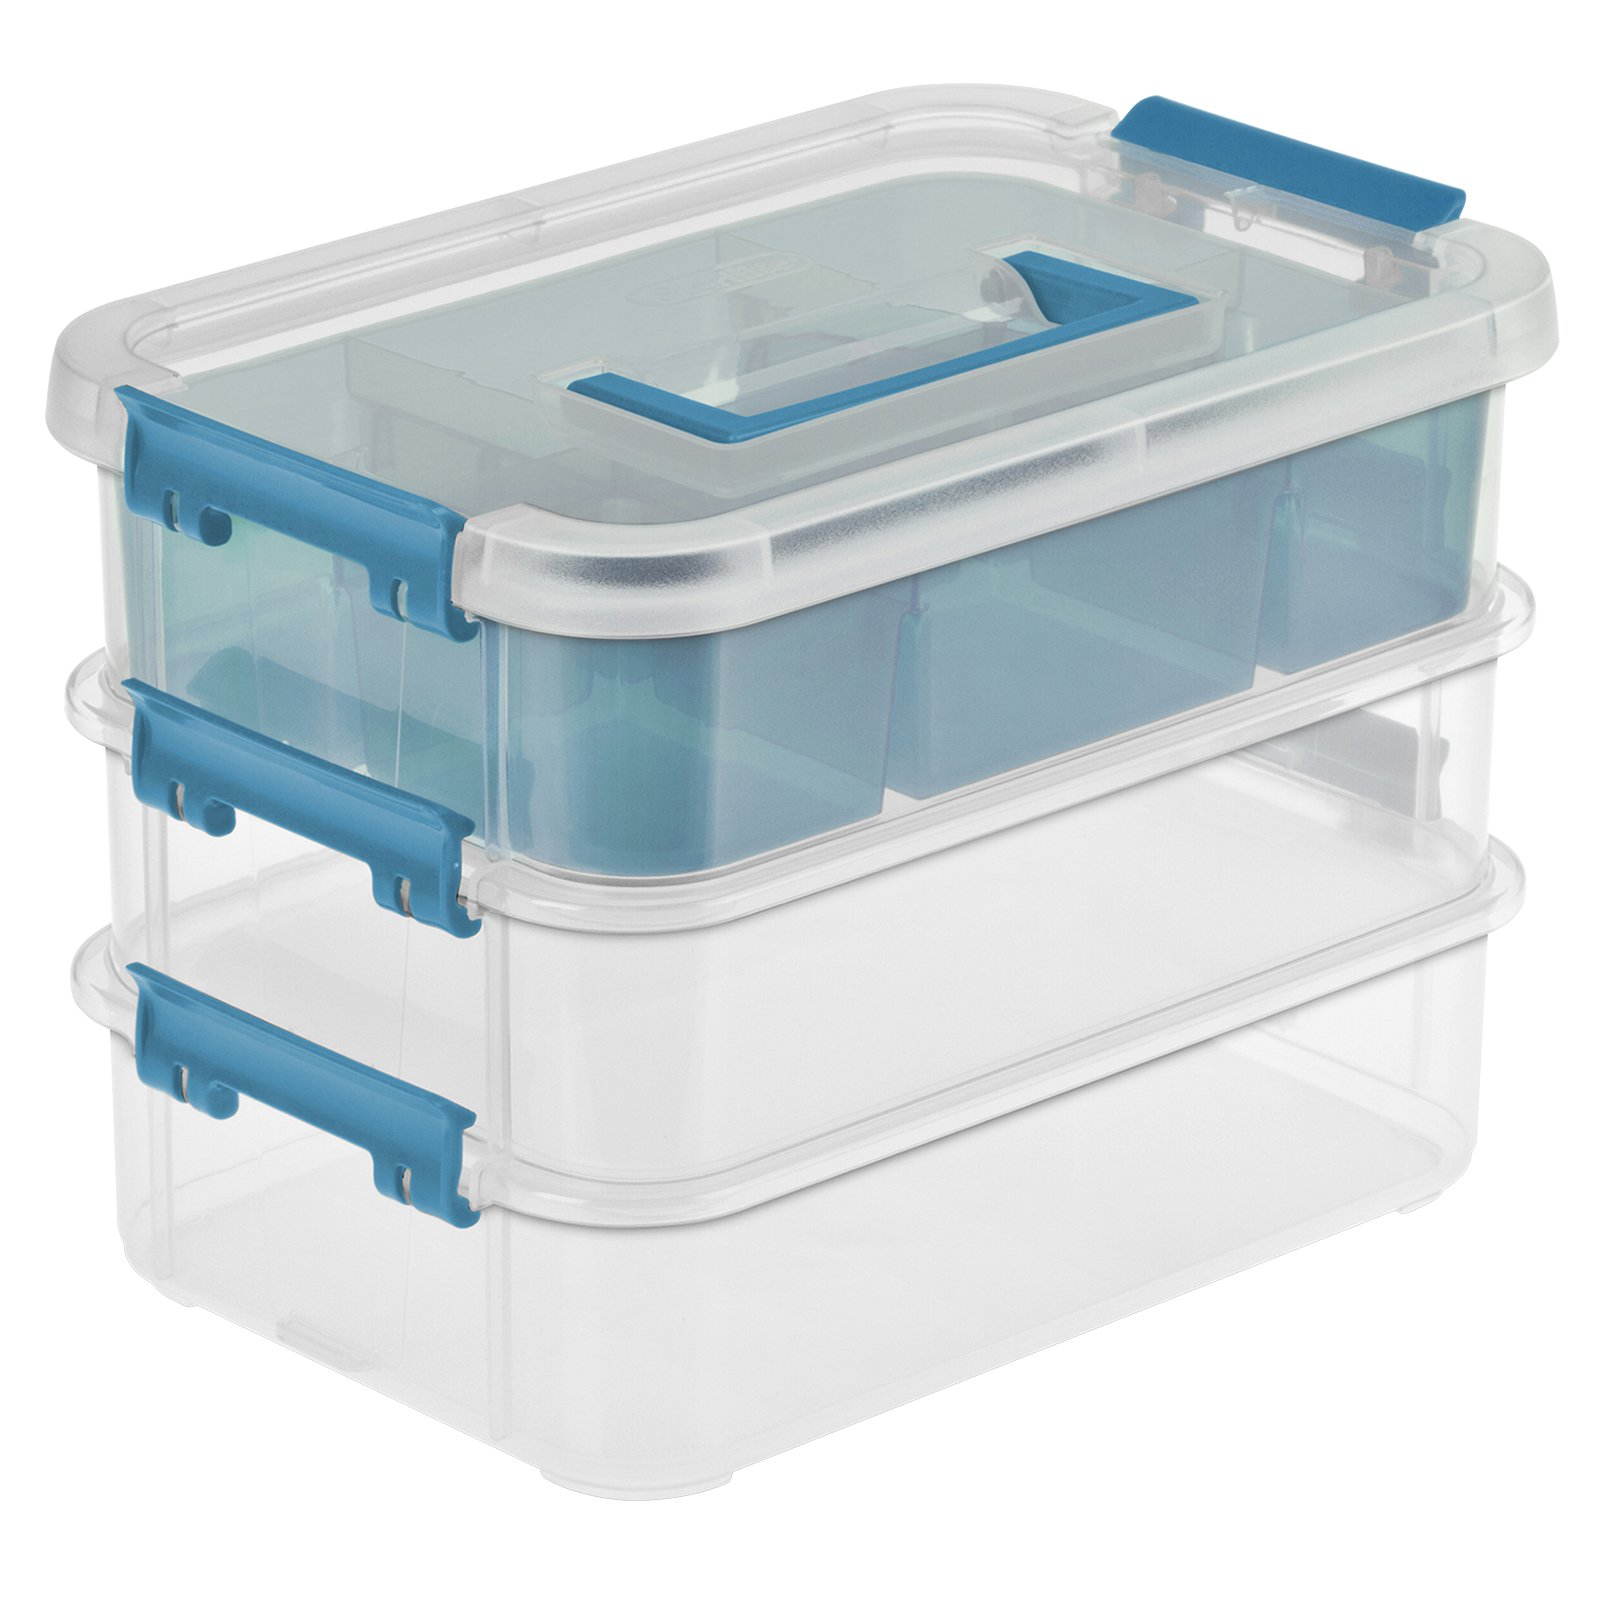 Sterilite 3 Layer Stack & Carry Box